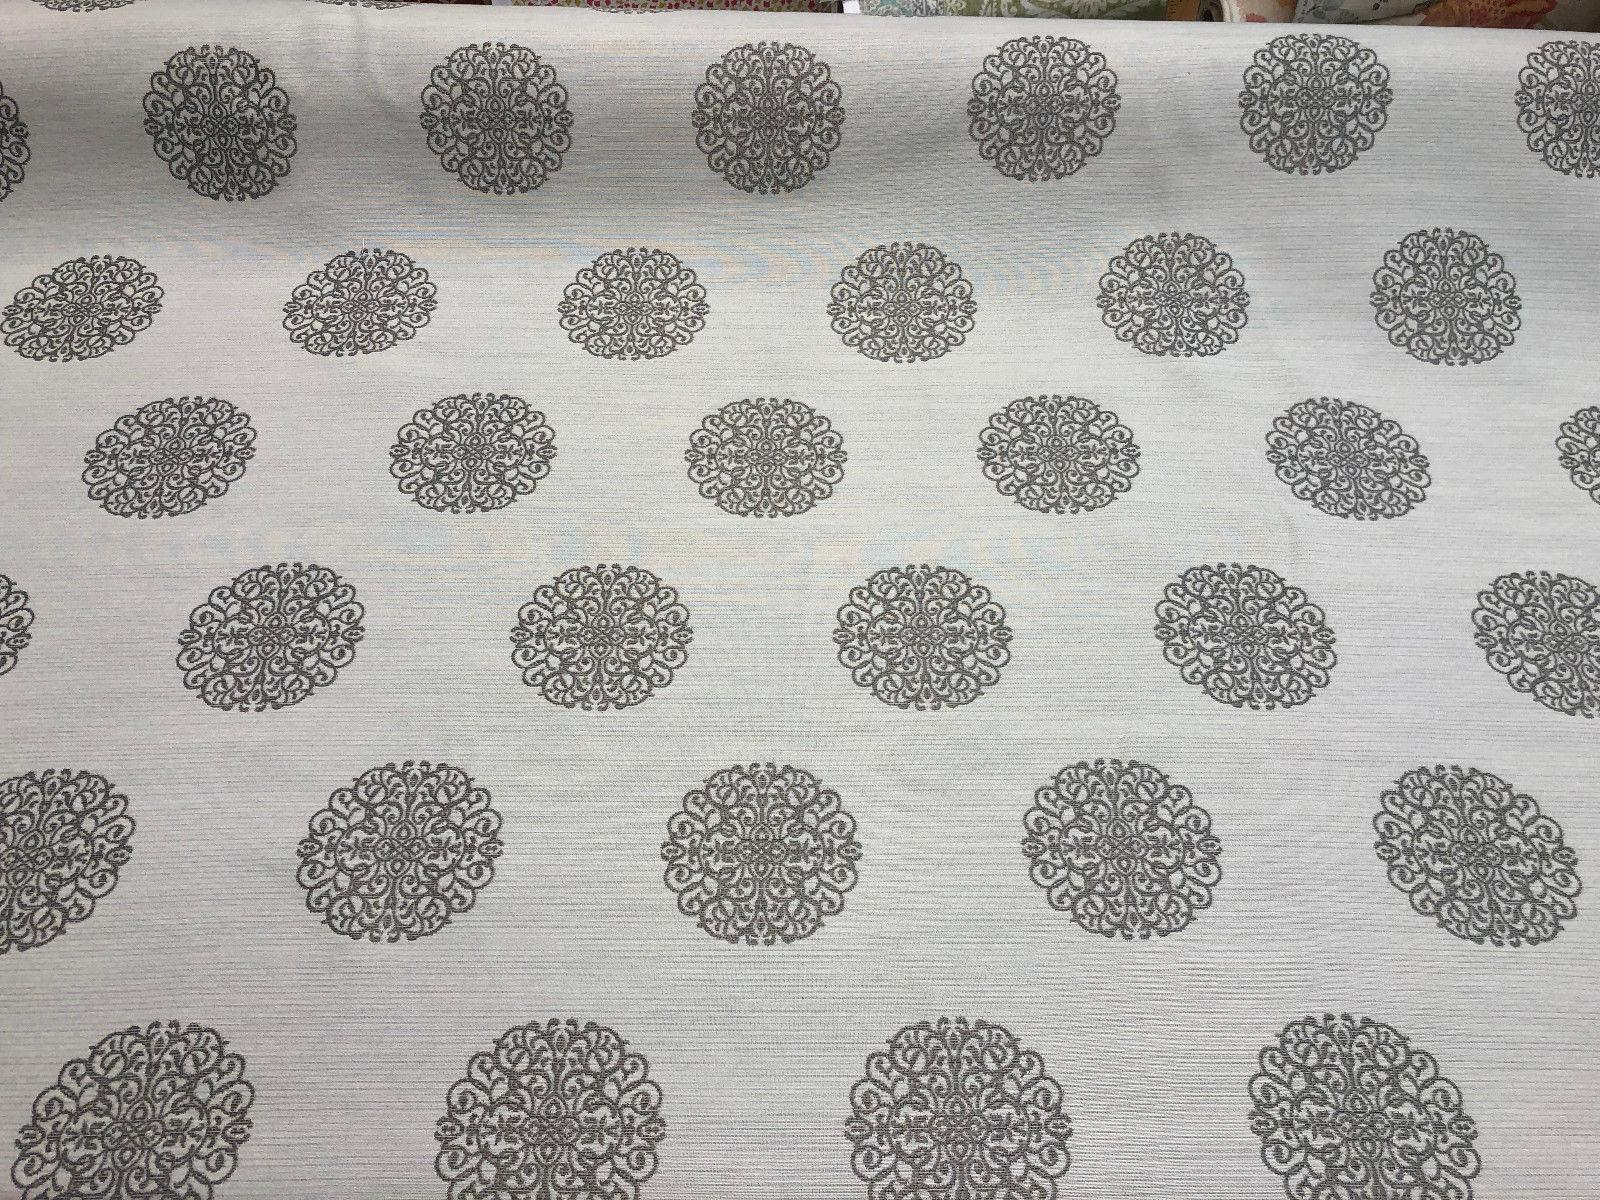 Moda Celtic Knot Silver Crown Jacquard Fabric By The Yard